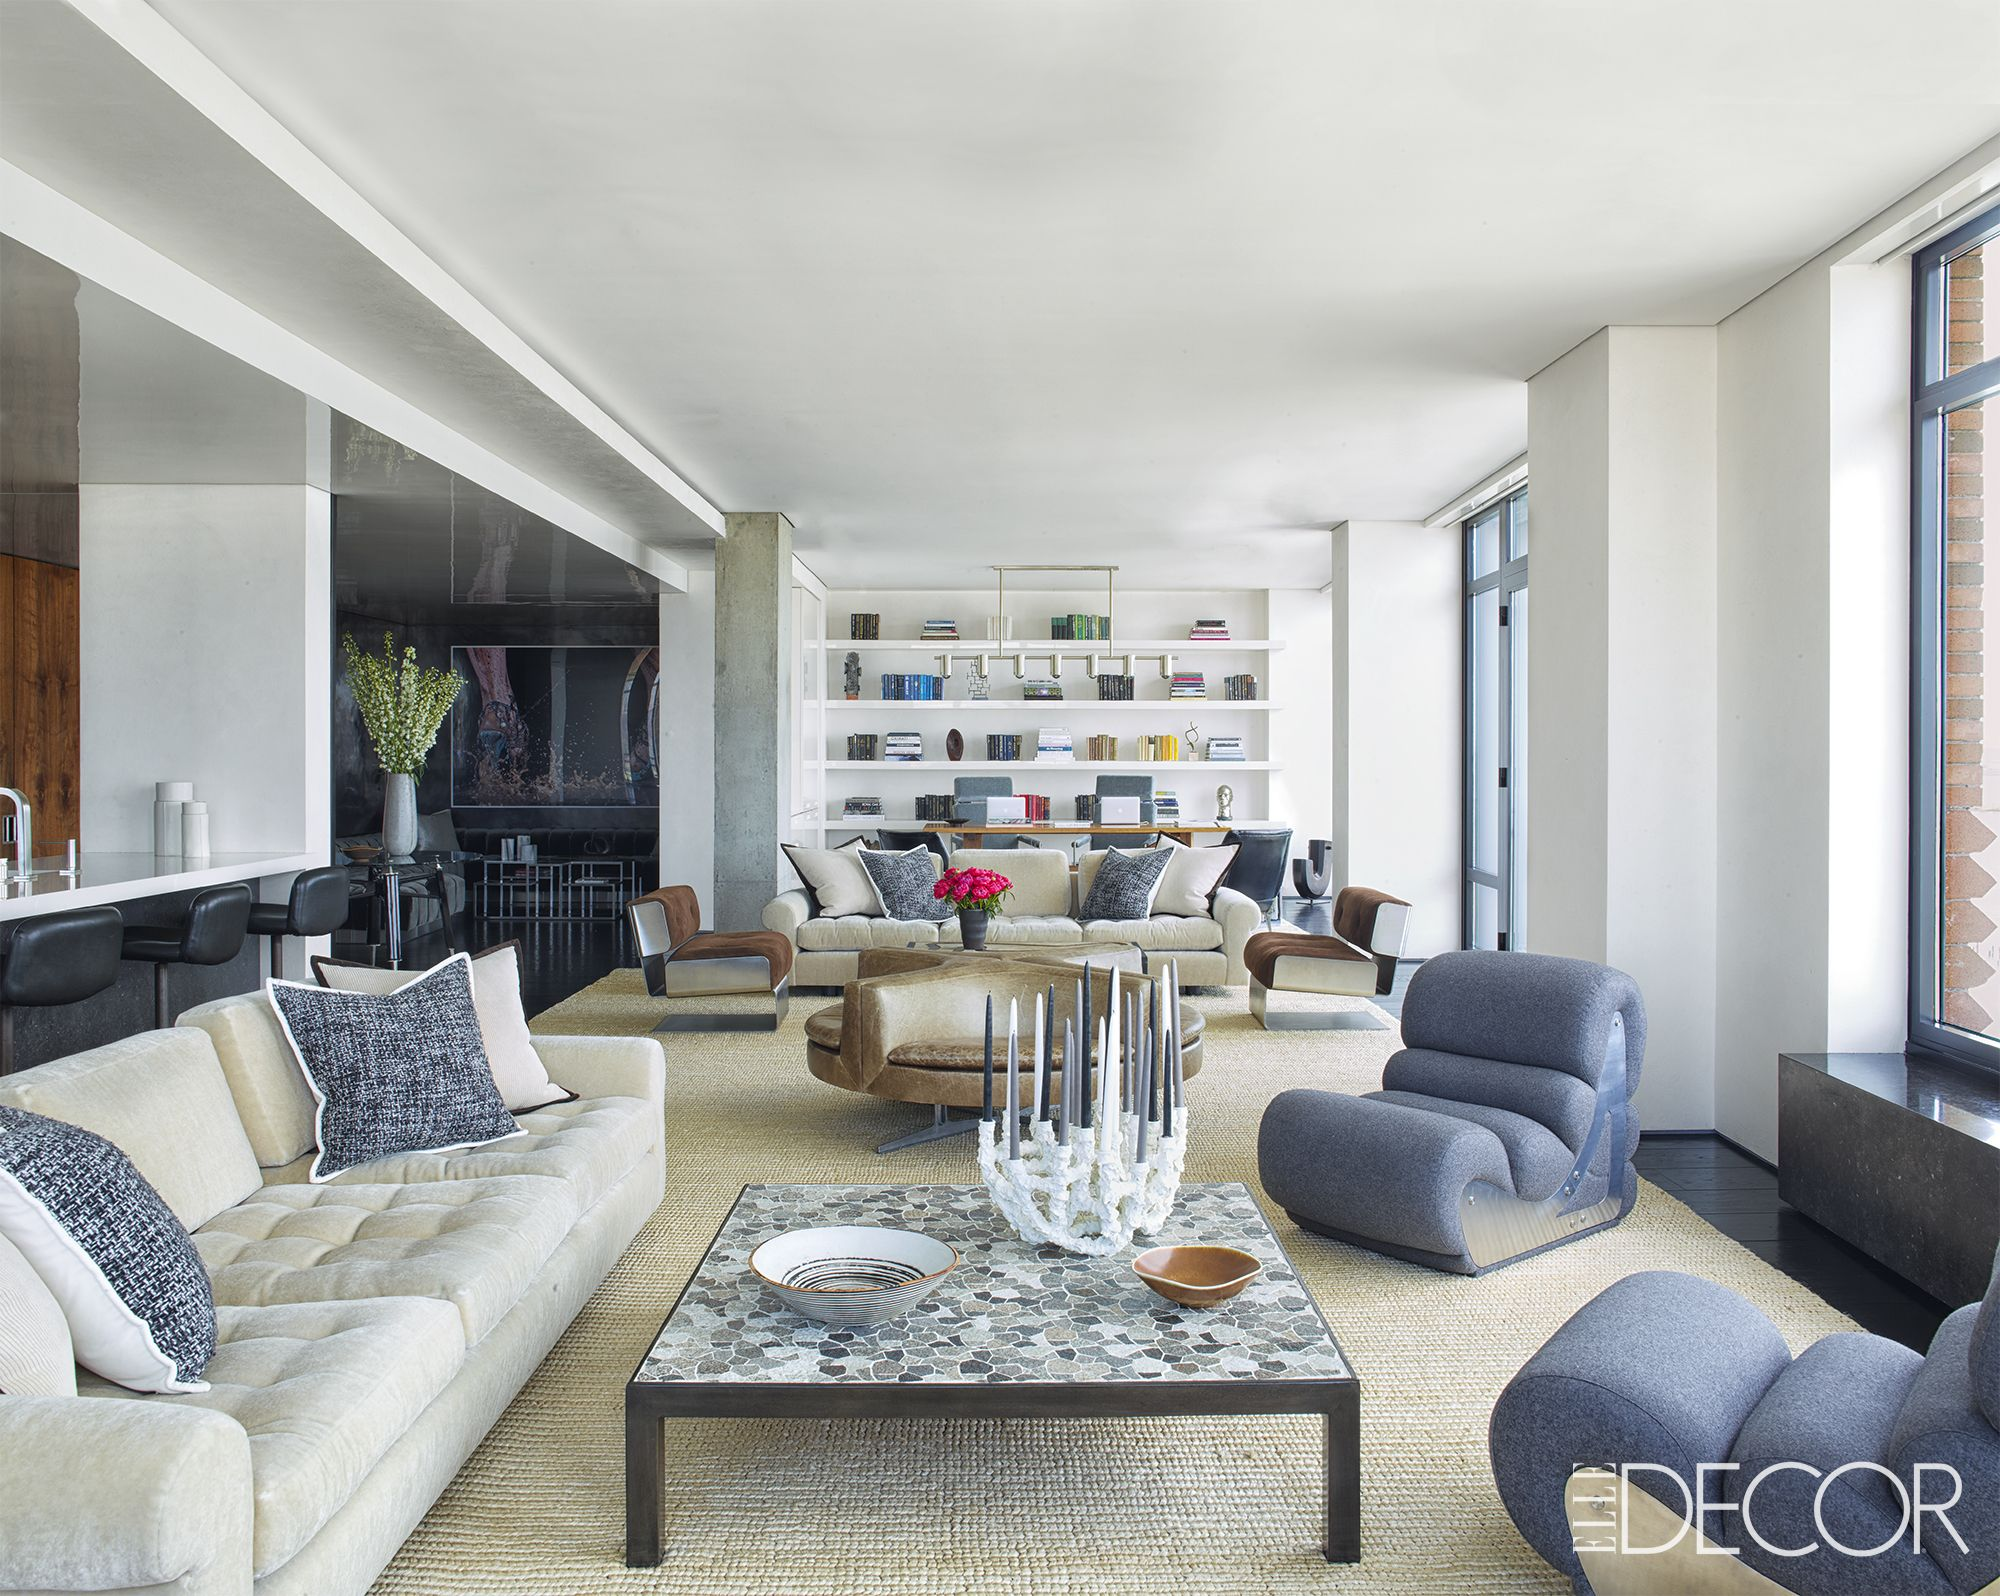 Best Colors For Large Spaces